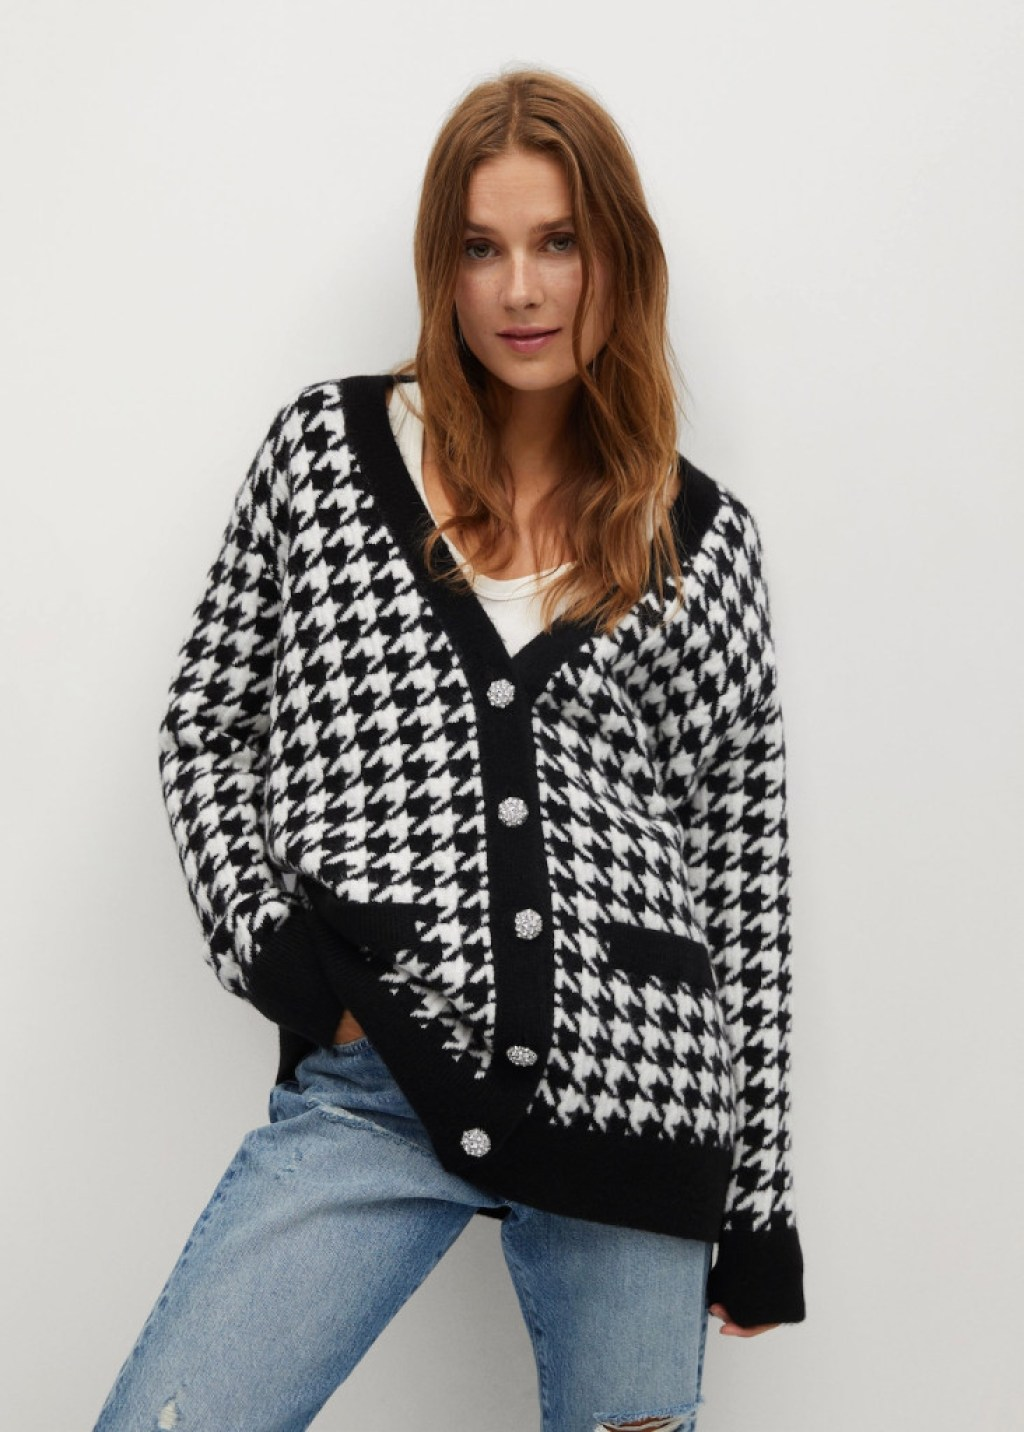 A model wearing a houndstooth cardigan in black and white with diamanté buttons, paired with jeans.